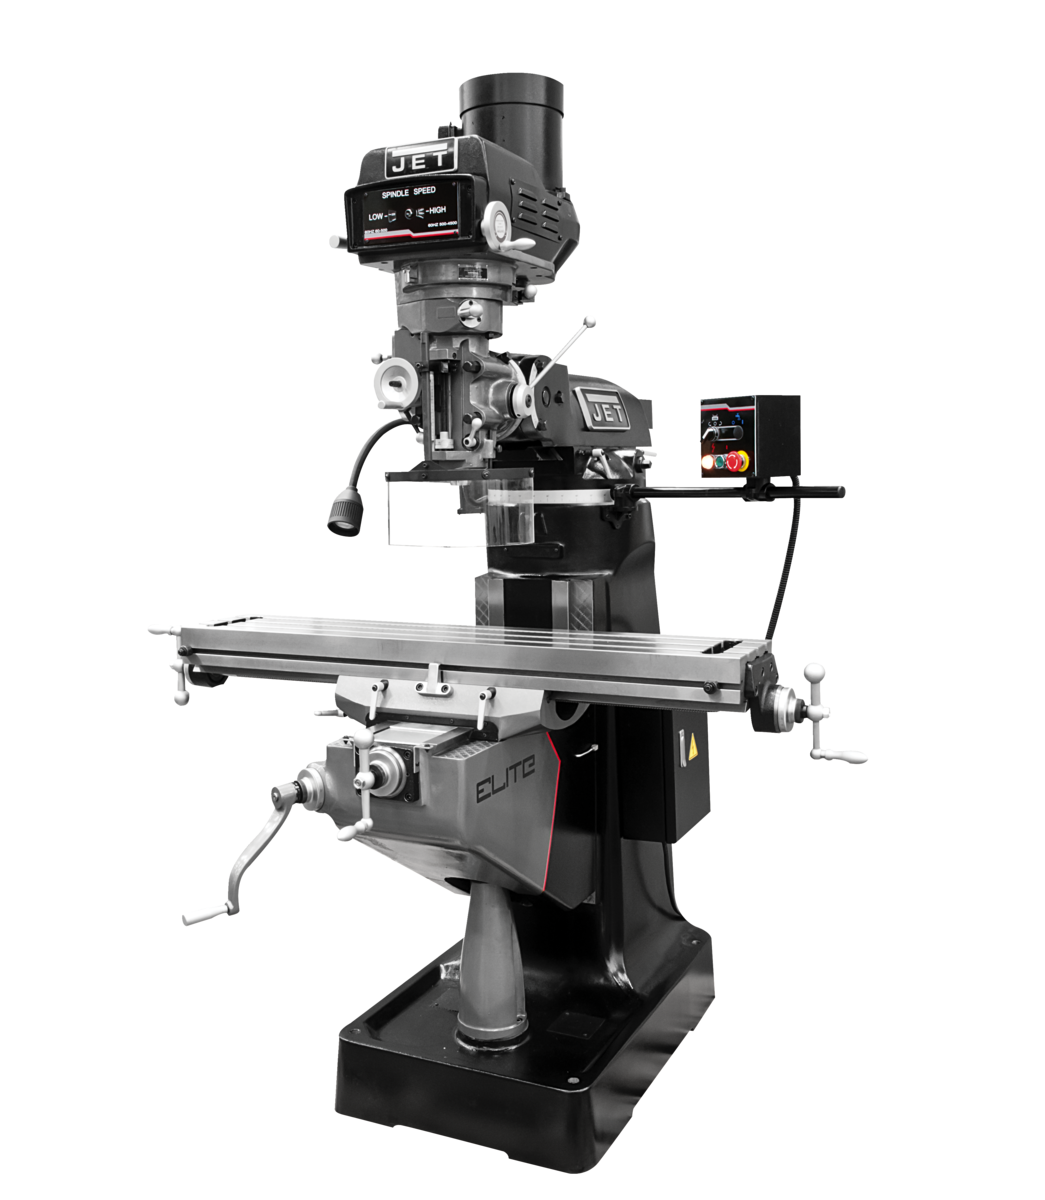 ETM-949 Mill with 3-Axis ACU-RITE 203 (Quill) DRO and X-Axis JET Powerfeed and USA Made Air Draw Bar